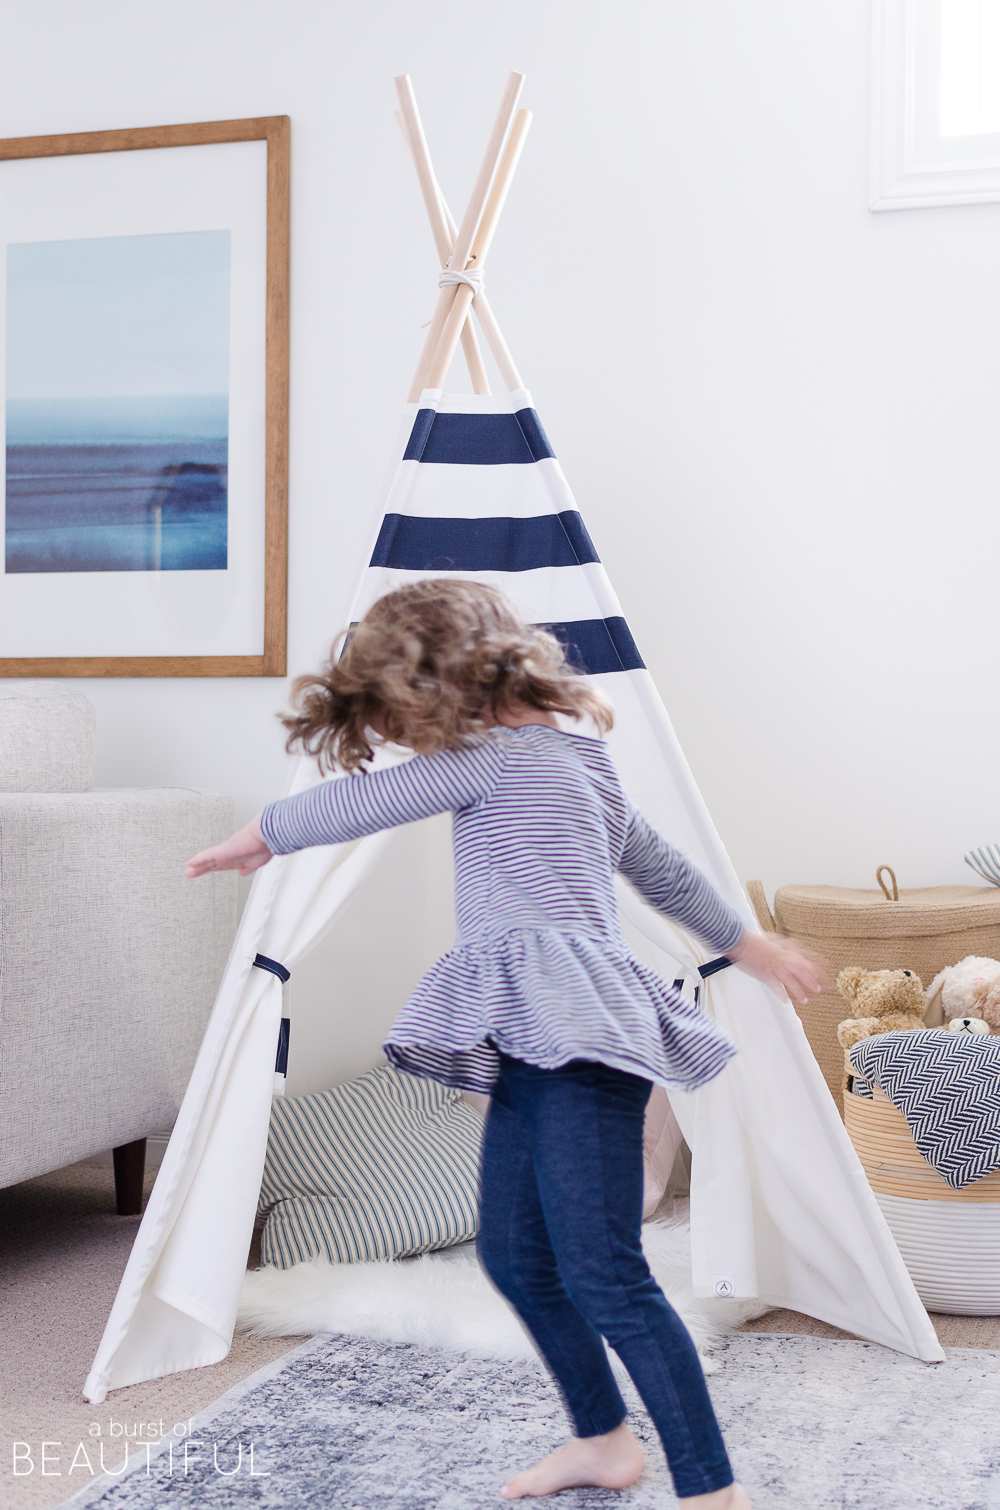 Hints of blue pop against bright white walls in this cheerful playroom, featuring a kid's desk, teepee and whimsical art.